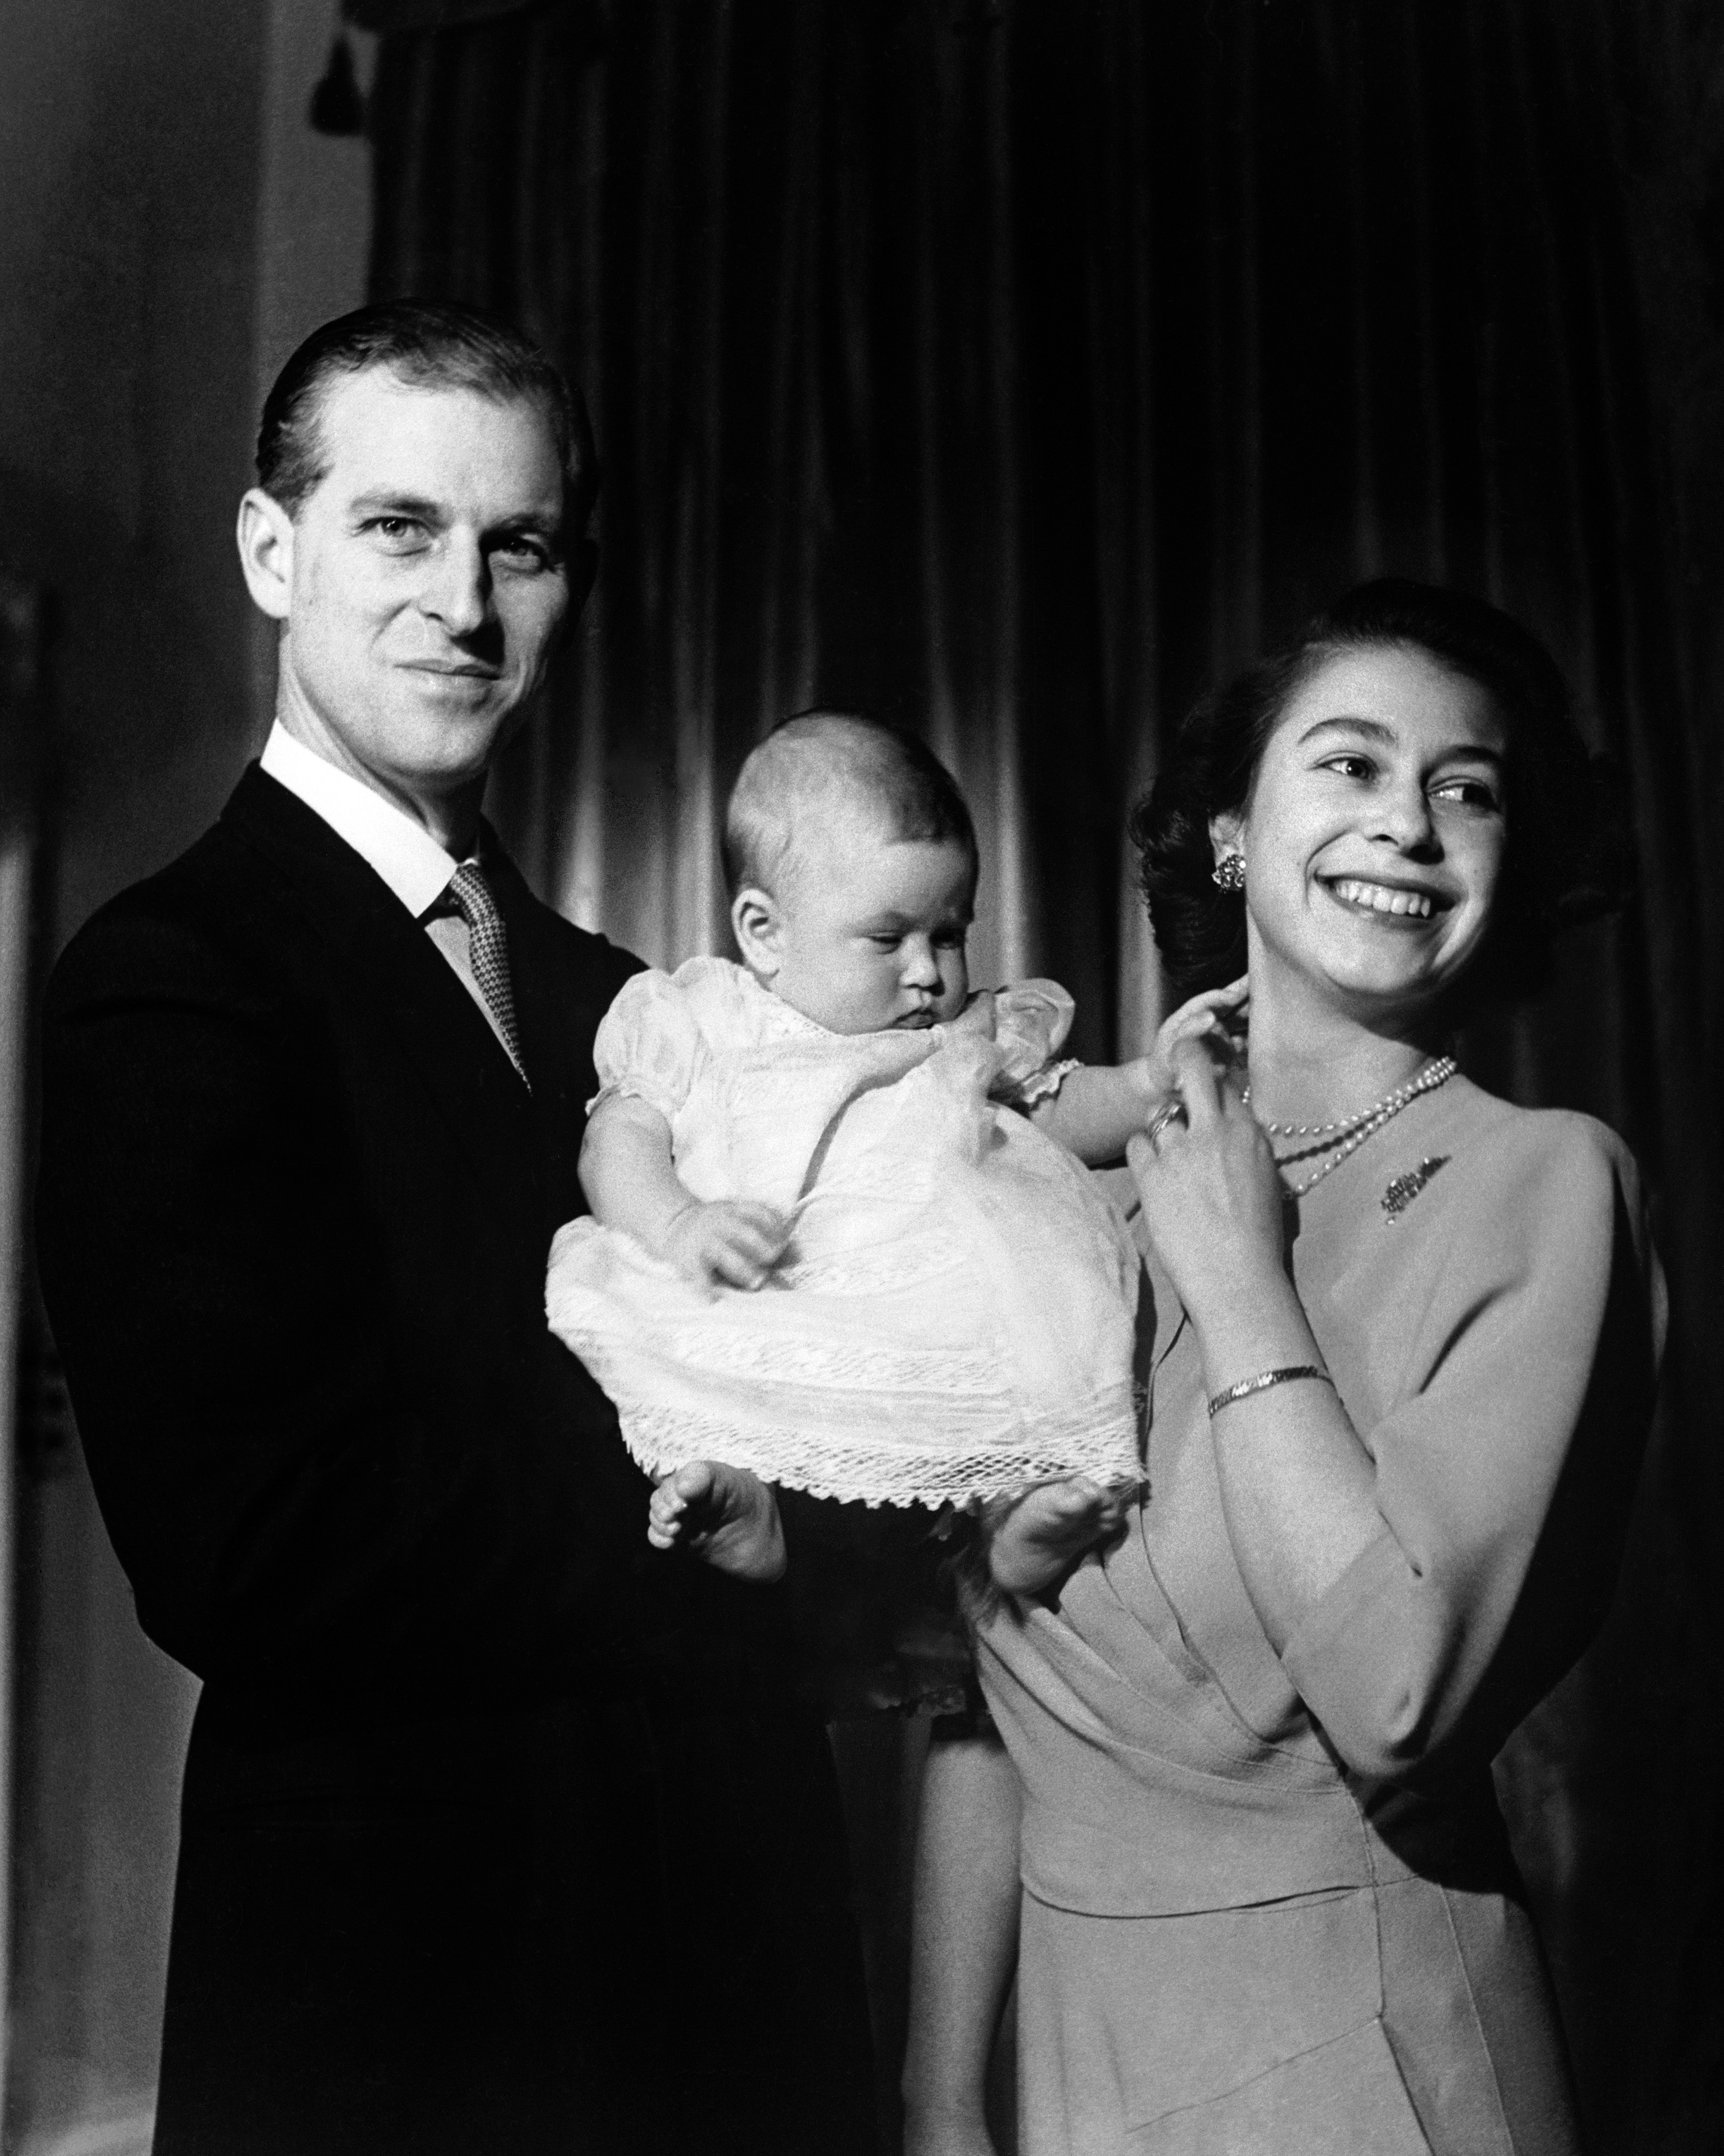 the queen, the duke of edinburgh, prince charles